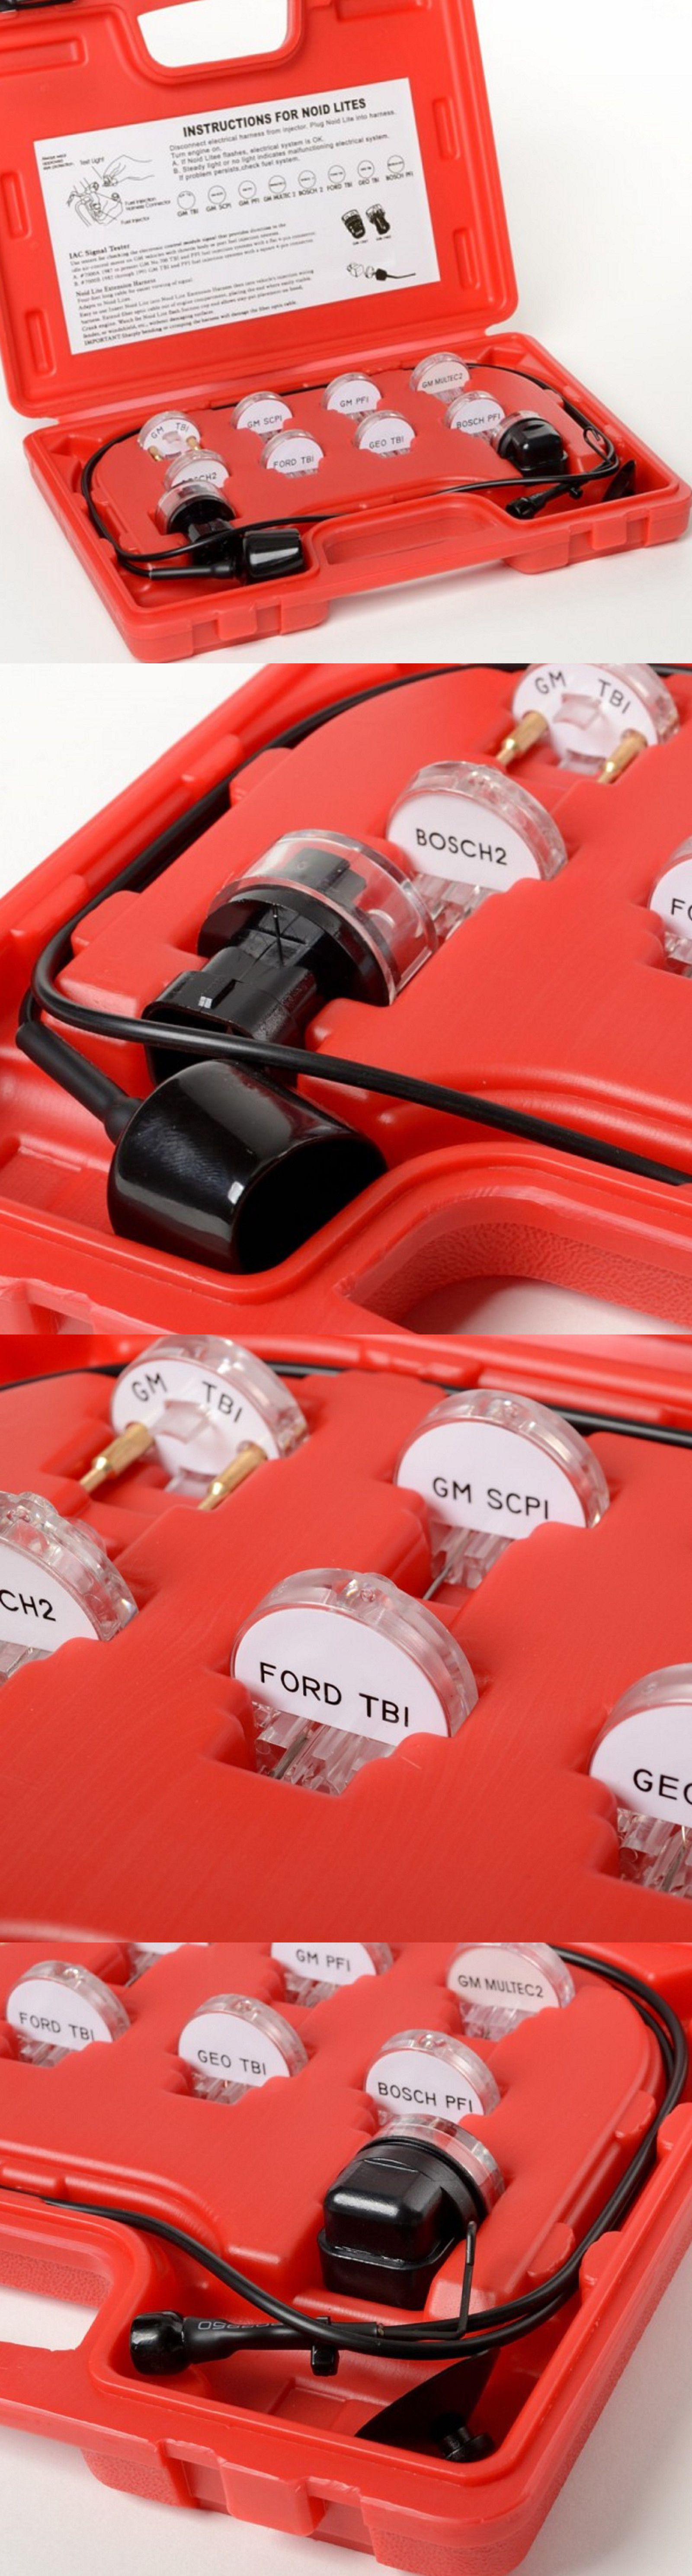 how to test fuel injectors with multimeter